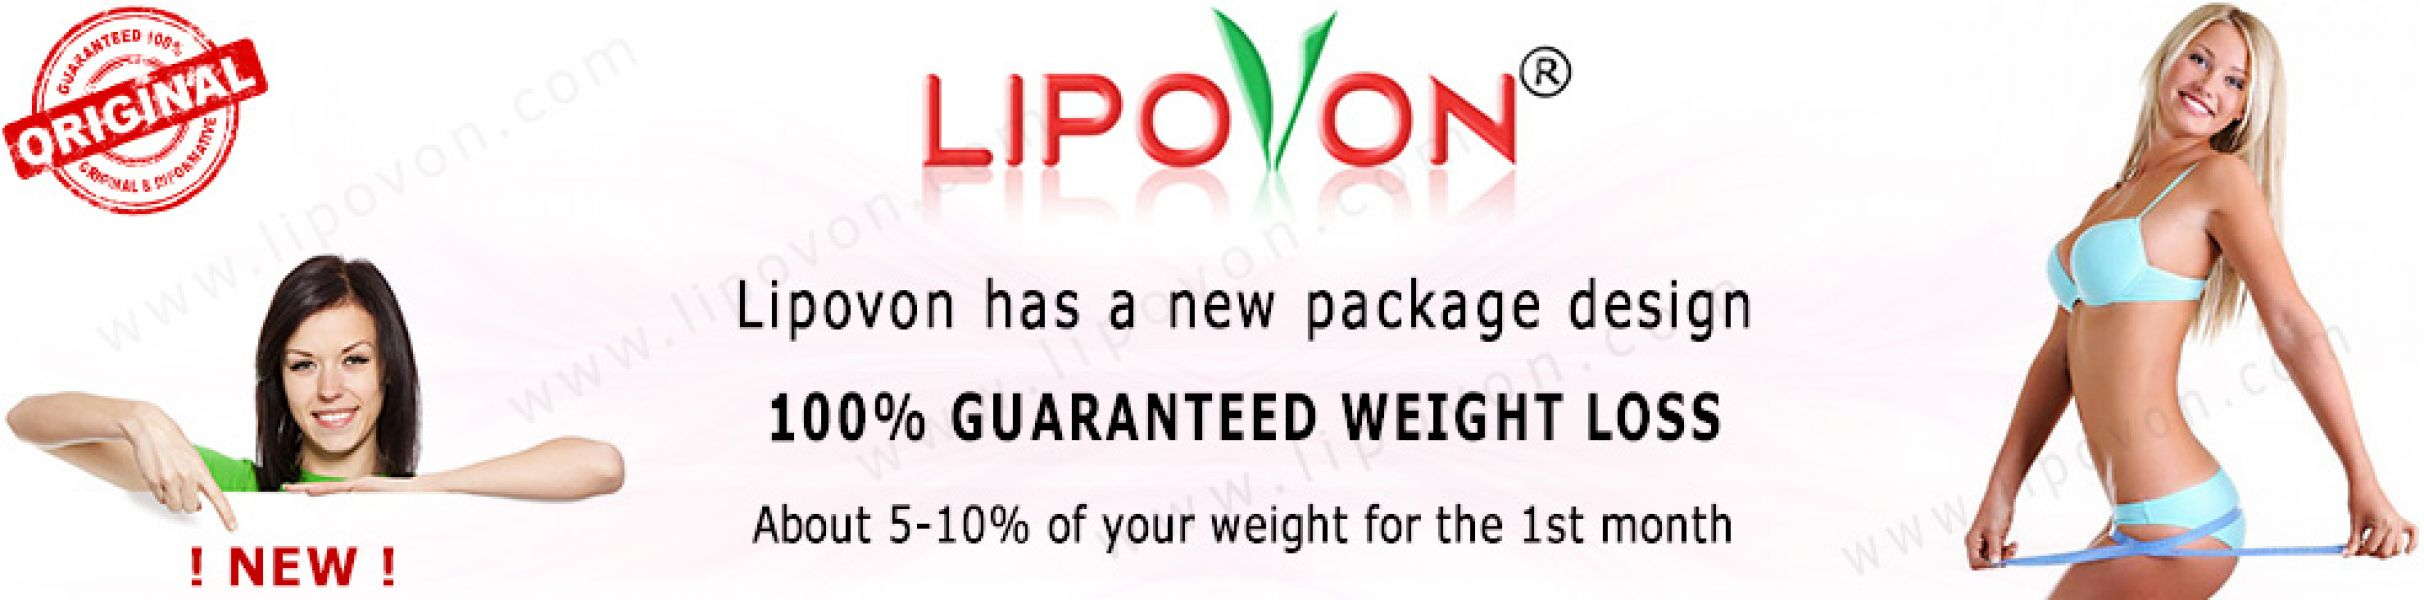 Lipovon - the best weight loss product!